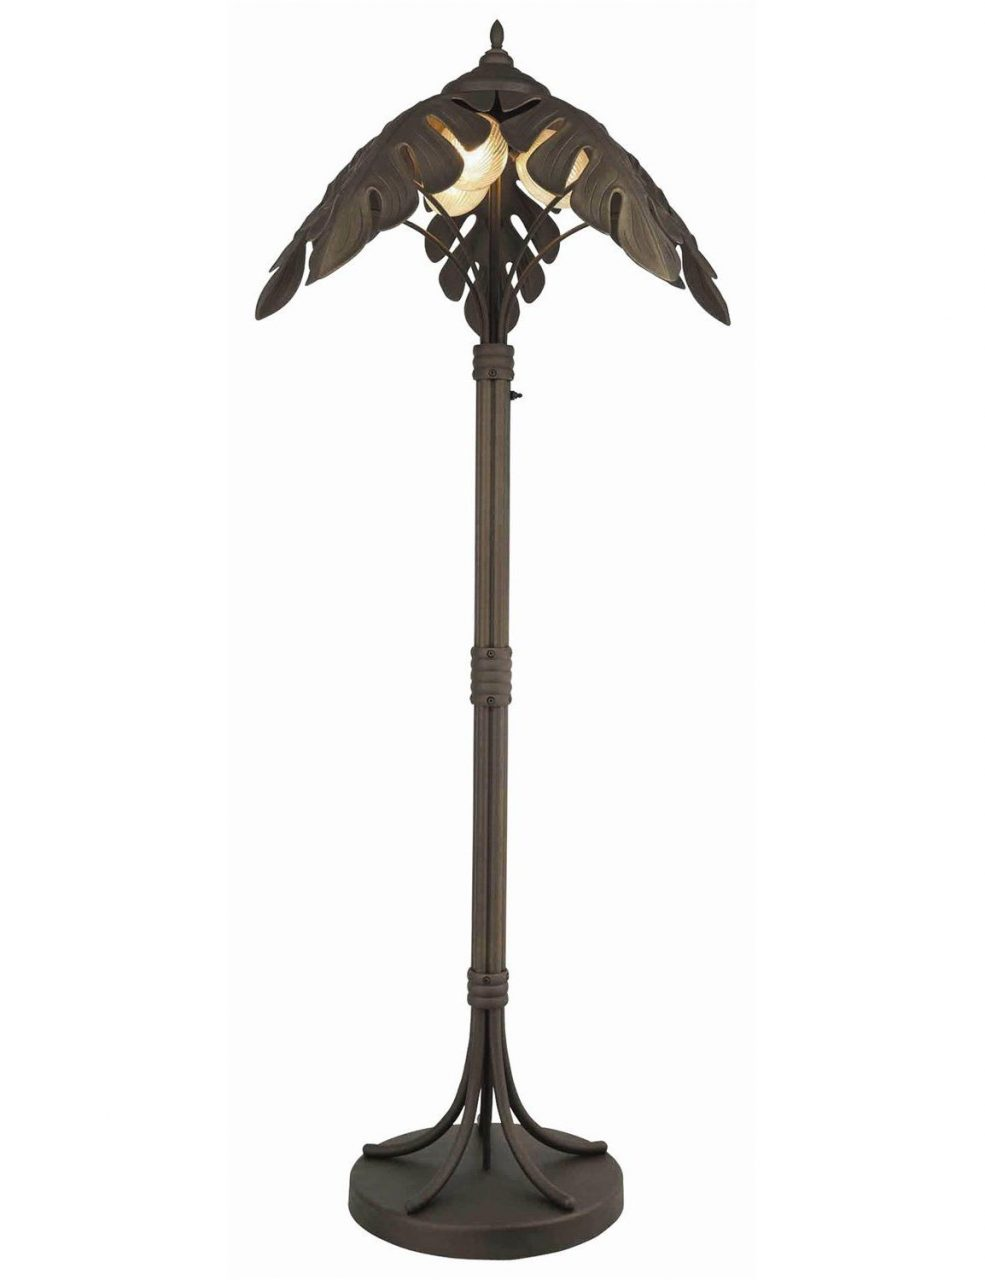 Cast Iron Outdoor Palm Tree Lamp Post Light Floor Lamp Garden